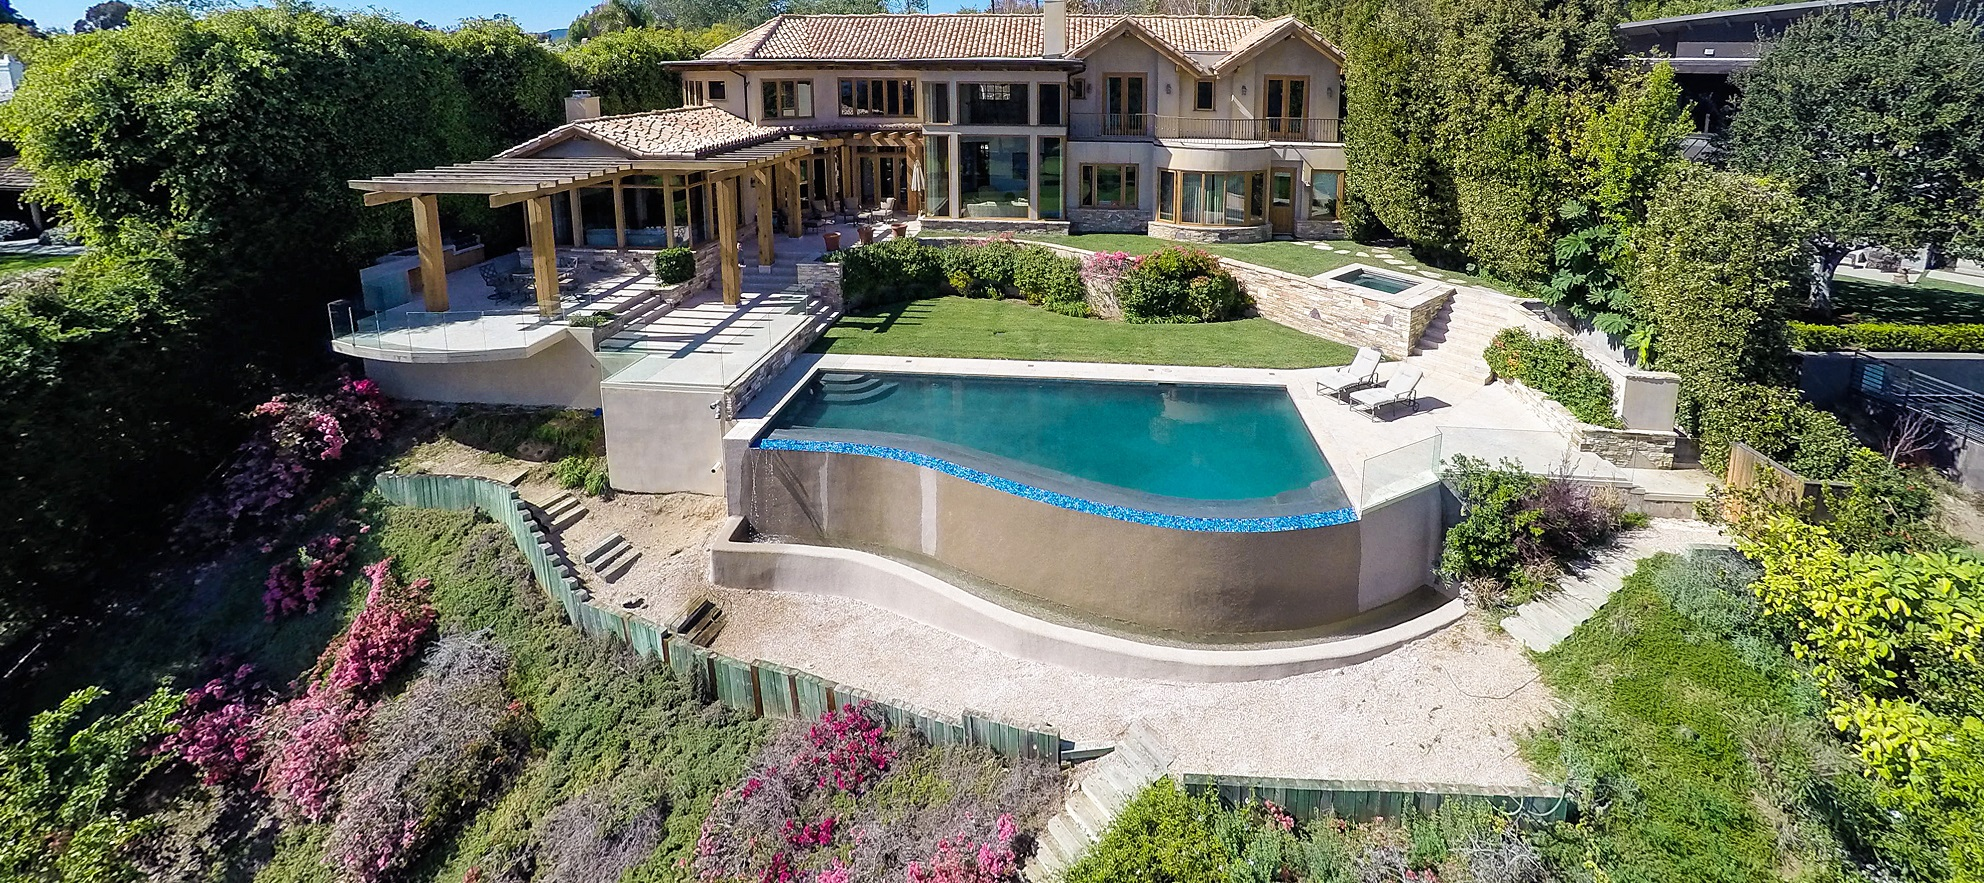 Luxury listing: Panoramic views at the country club